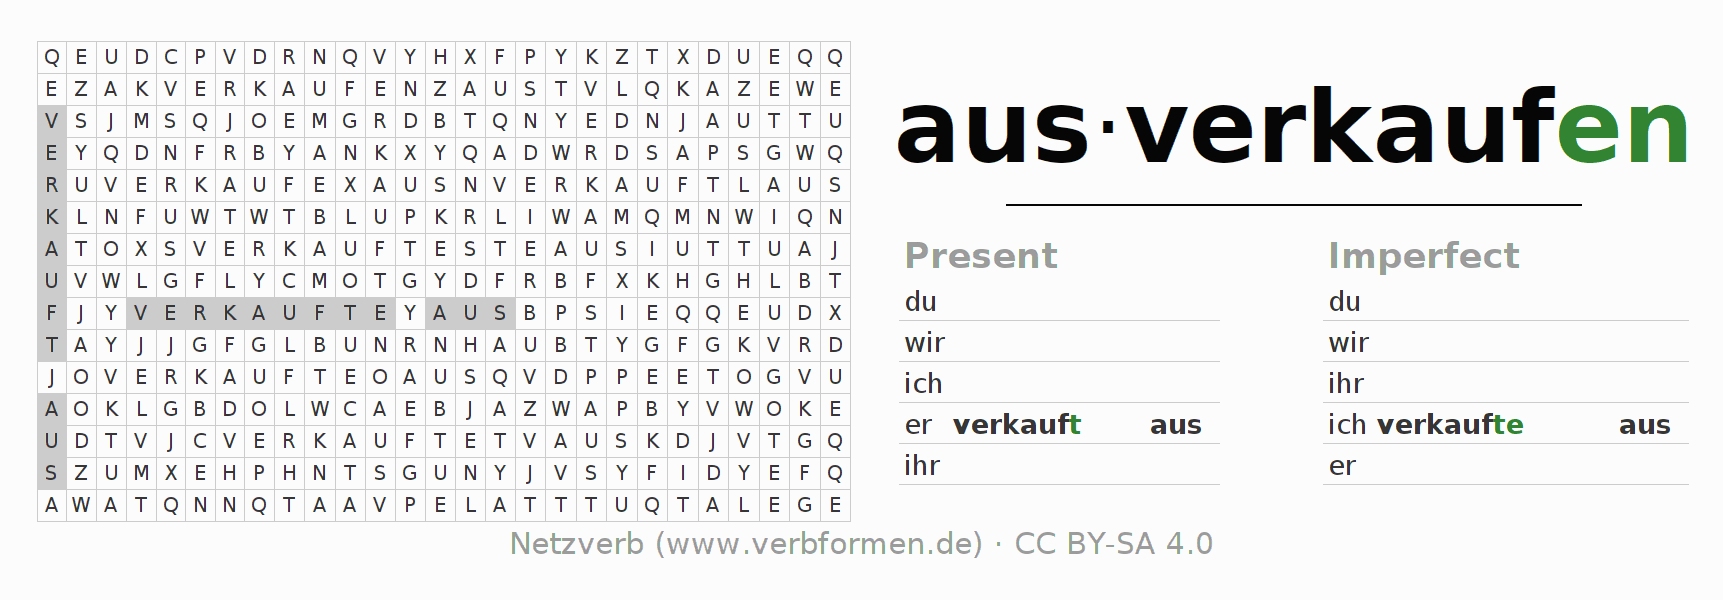 Word search puzzle for the conjugation of the verb ausverkaufen